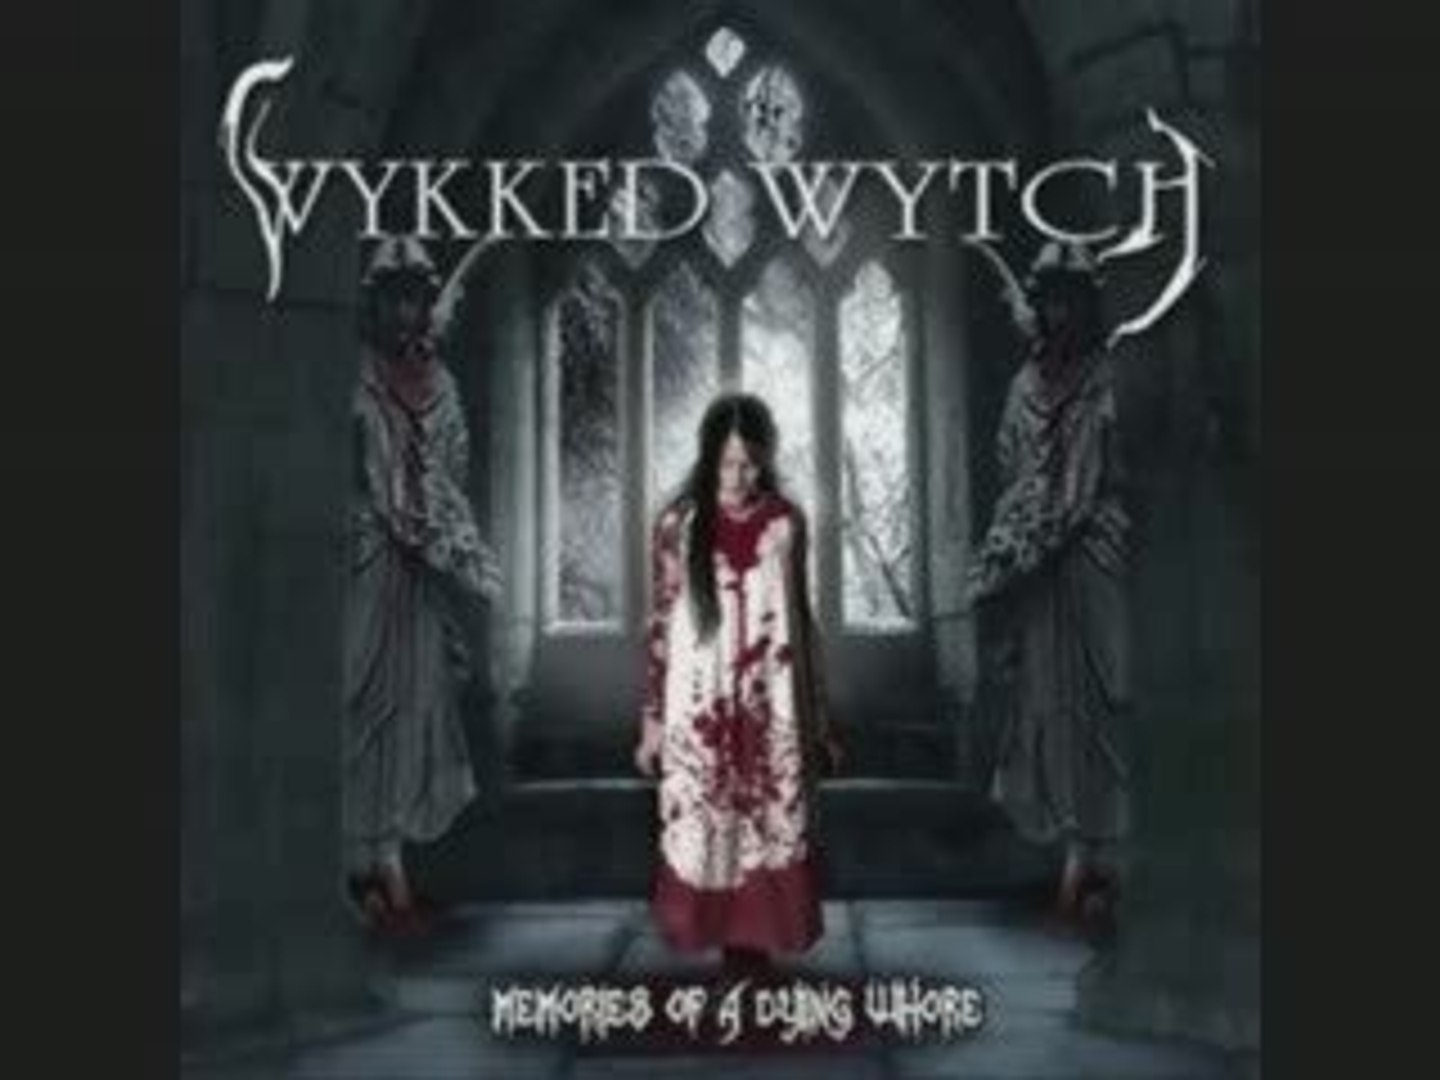 wykked wytch - Bloodstained Tears